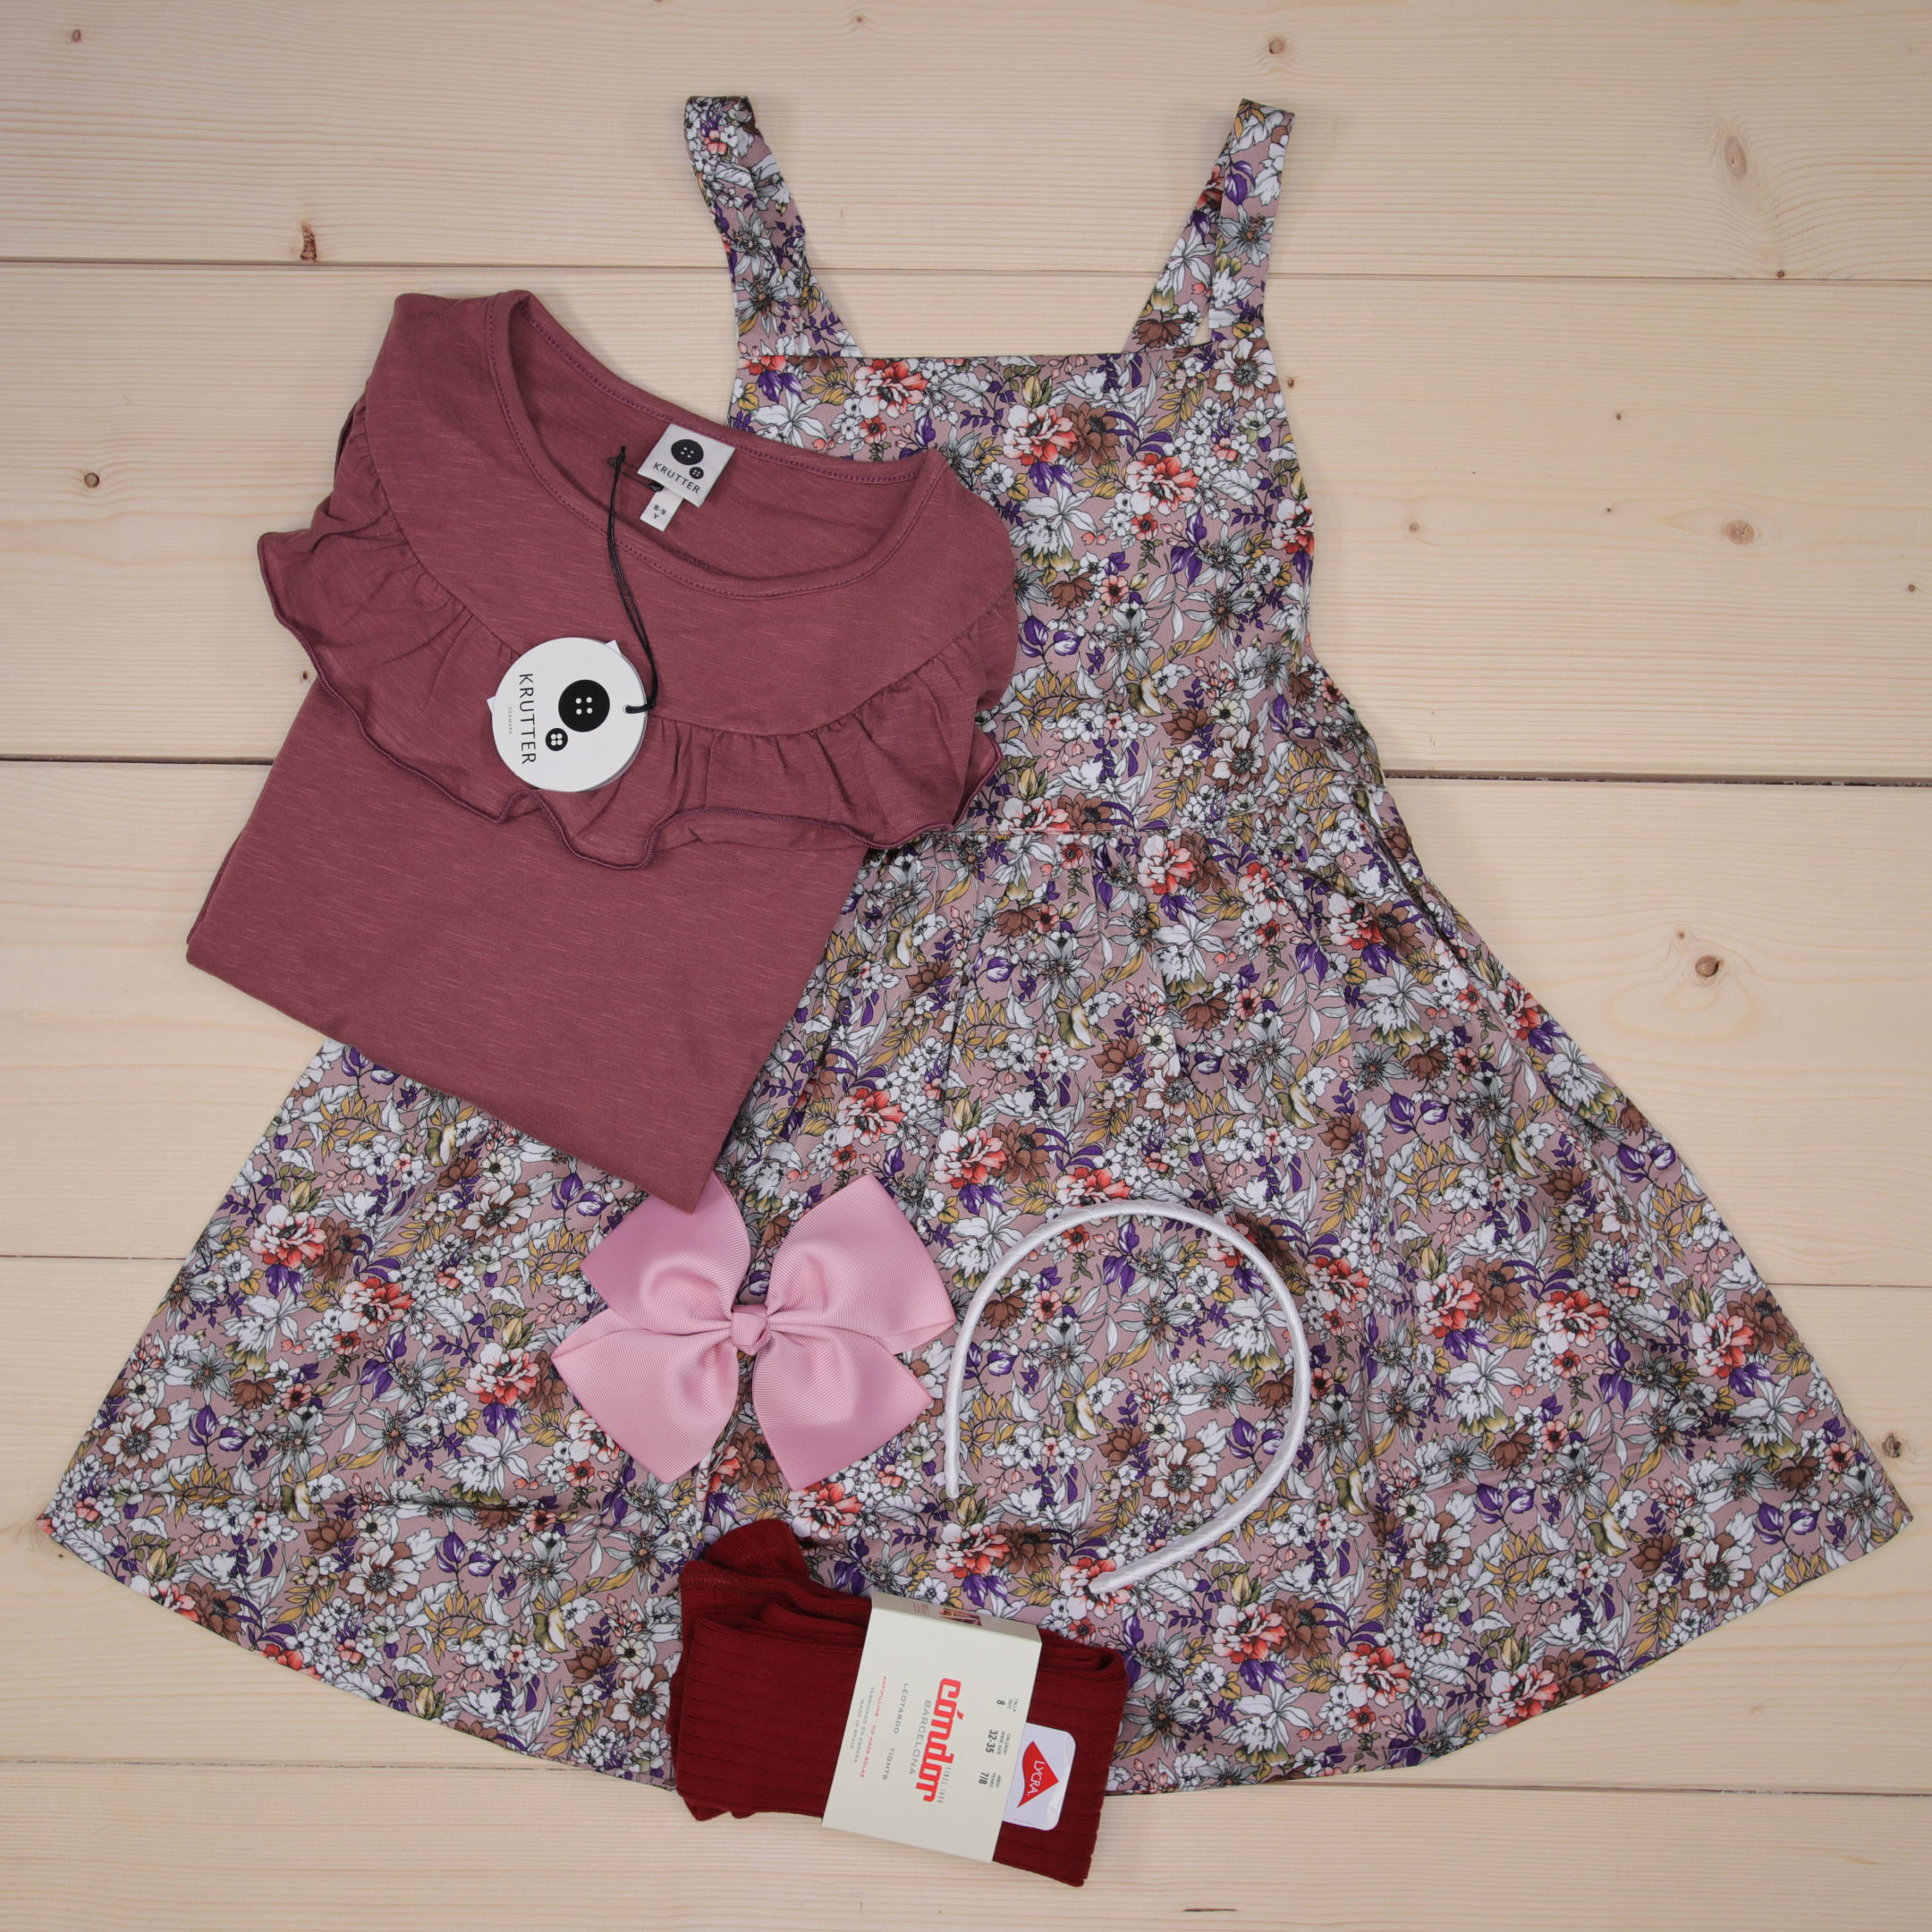 This is a 91 GBP* Småkassen that we prepared for a girl  in the styles cute and colorful in size 134